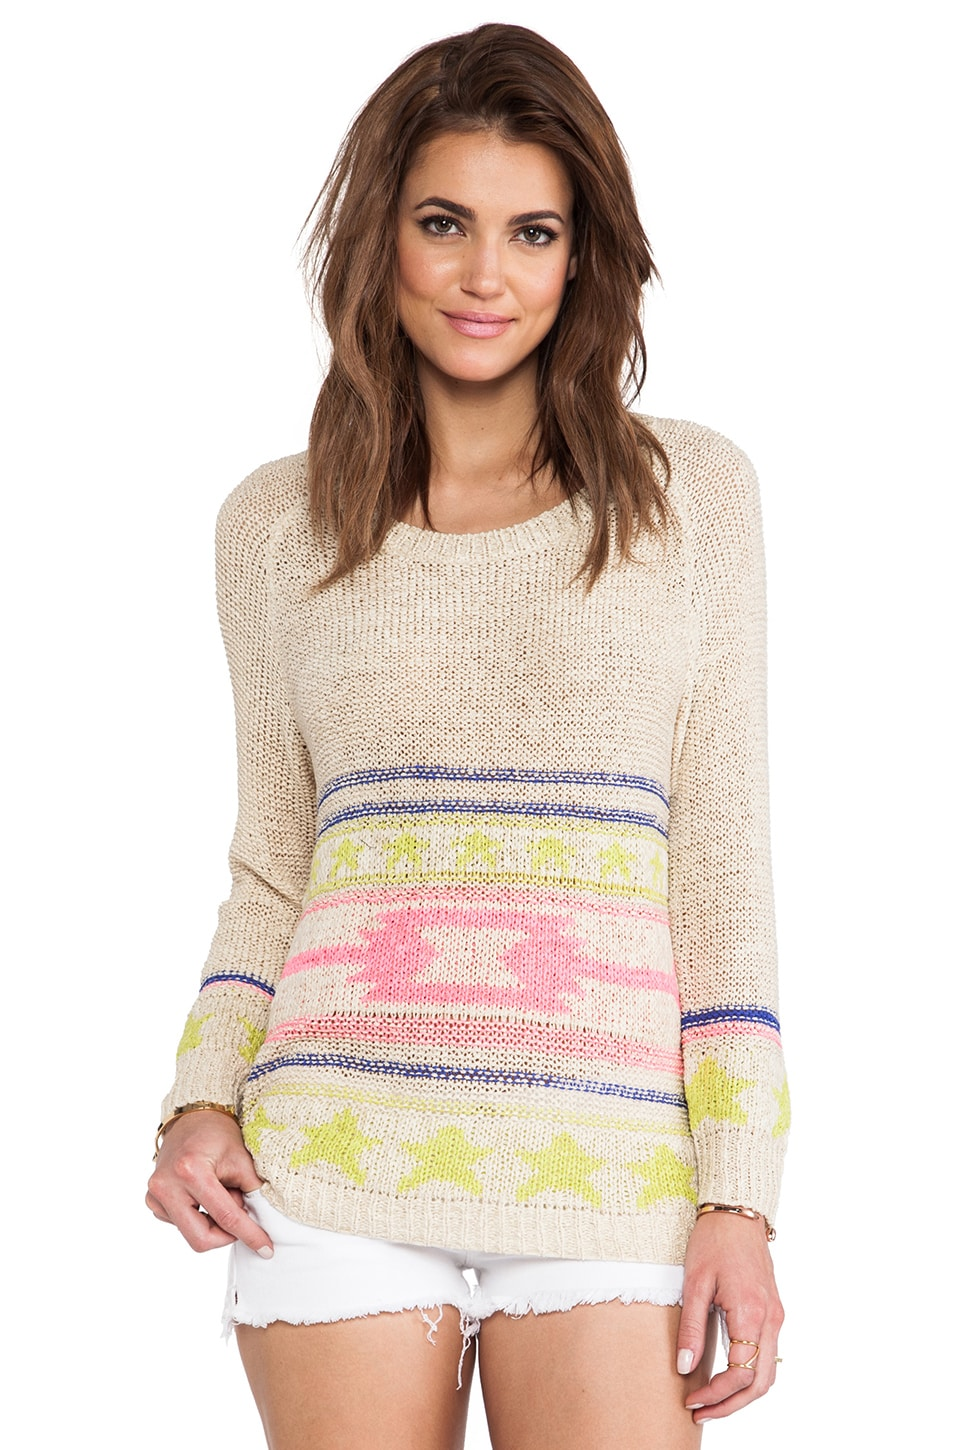 Surf Gypsy Printed Long Sleeve Top in Ivory & Multi